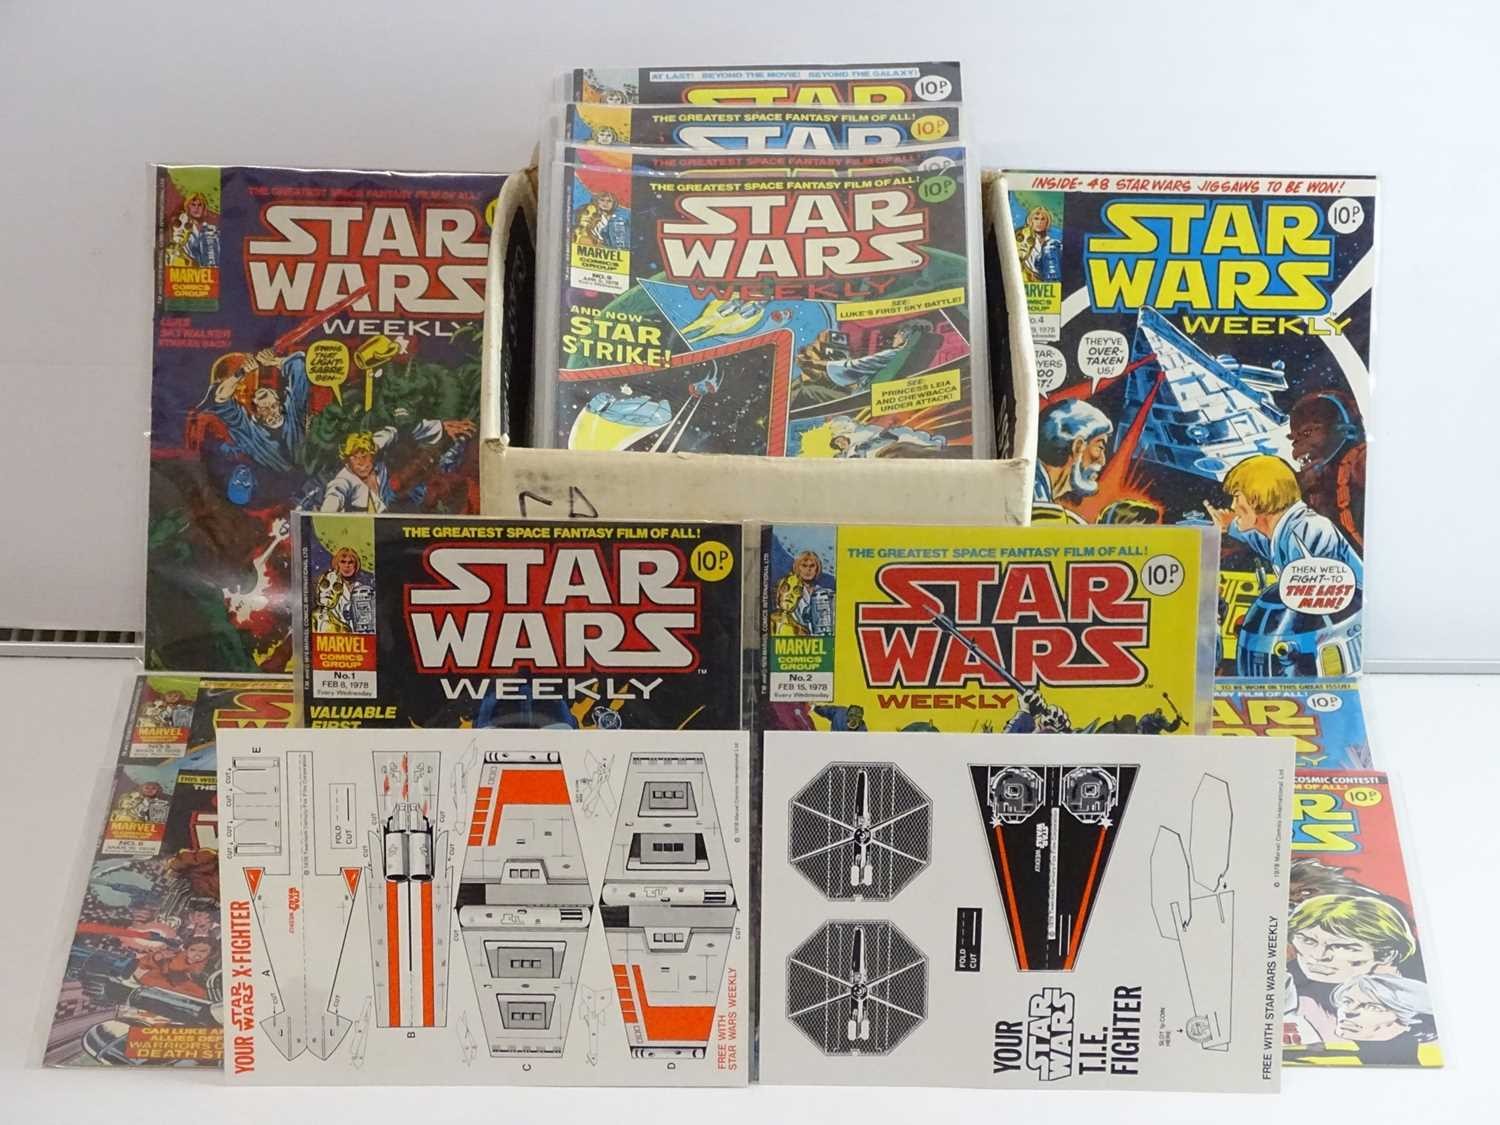 STAR WARS WEEKLY #1 to 165 - (165 in Lot) (1978/83 - BRITISH MARVEL) - Complete 165 issue run